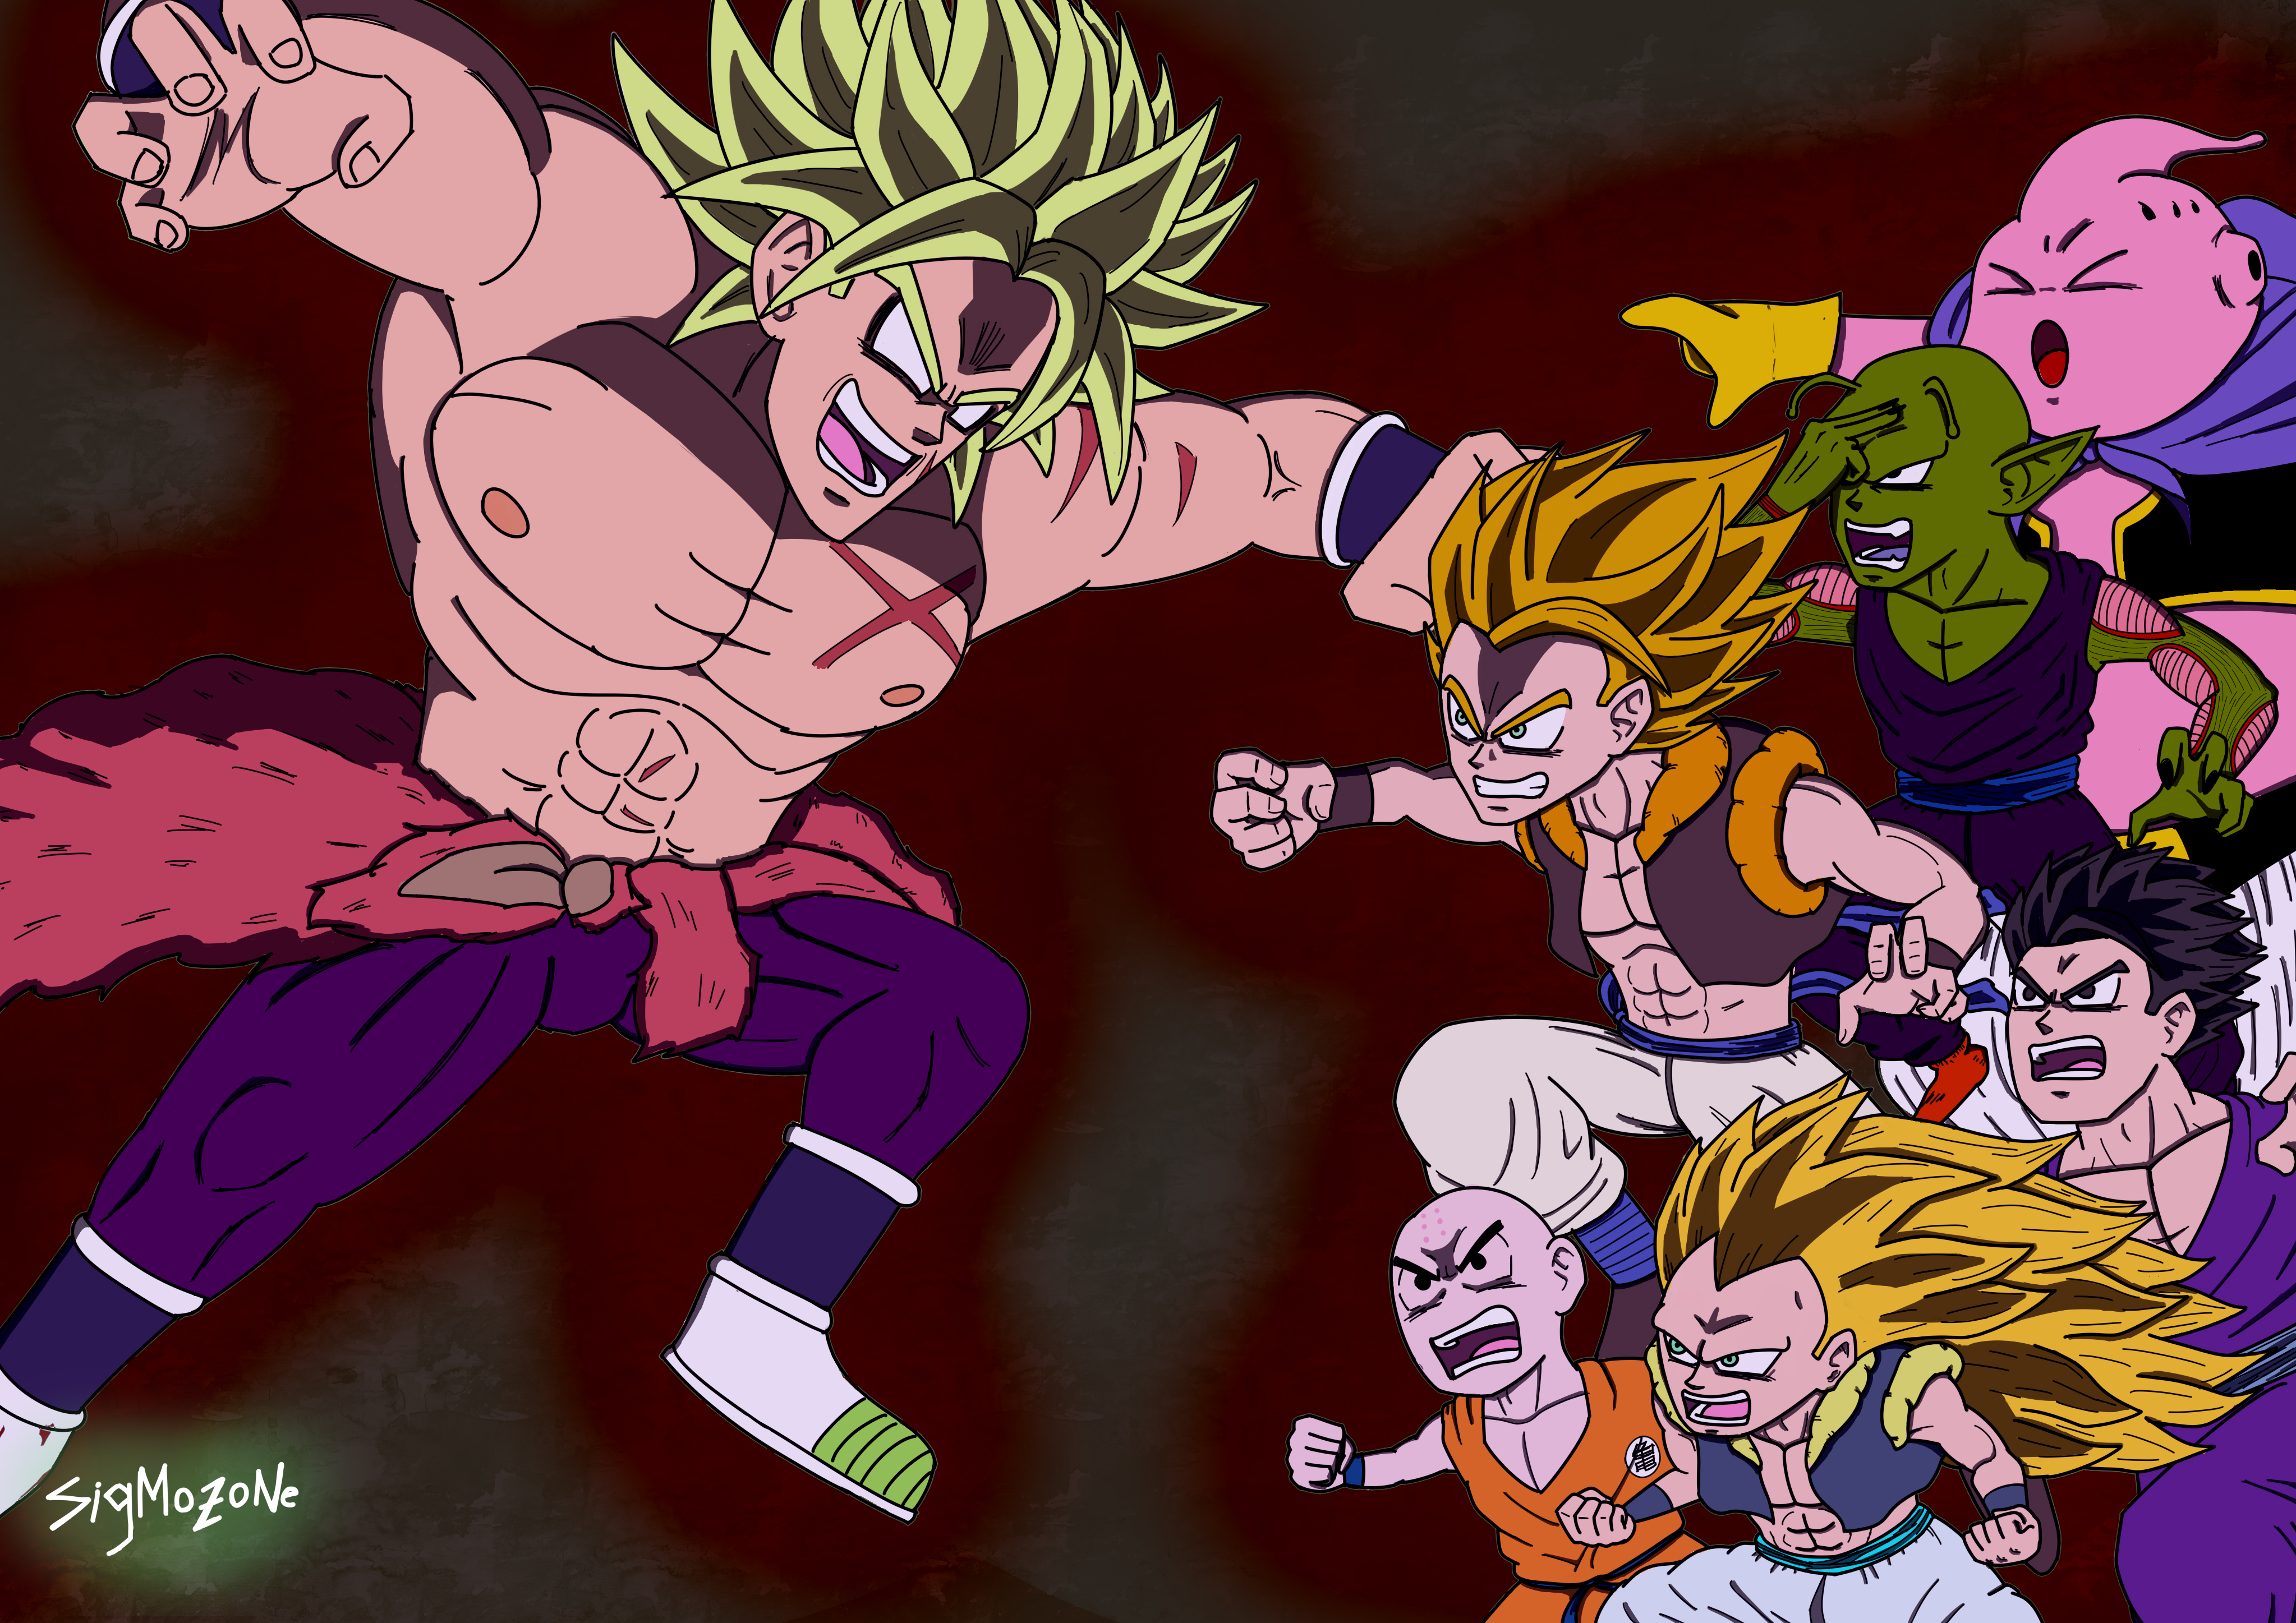 Broly Vs Gogeta Z Fighters By Sigmozone On Newgrounds